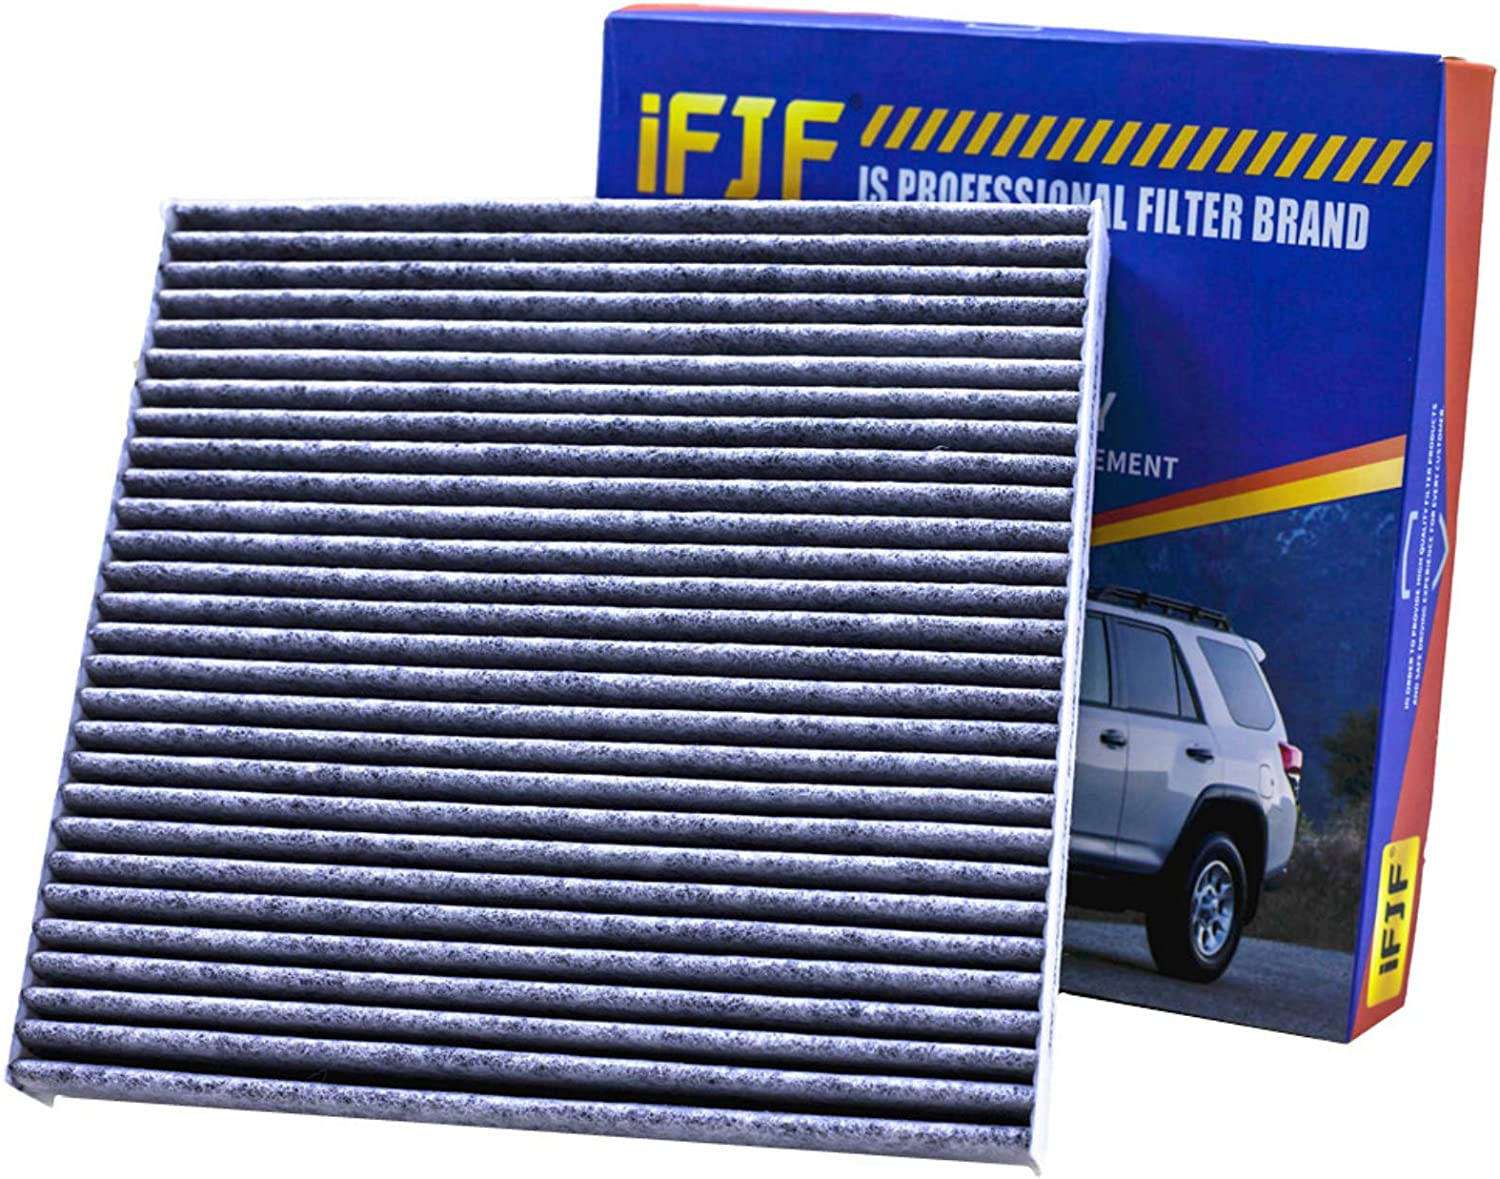 Honda /& Acura CF10134 RDX ILX CSX Puroma 2 Pack Cabin Air Filter with Multiple Fiber Layers Replacement for CP134 CR-V MDX Civic Odyssey